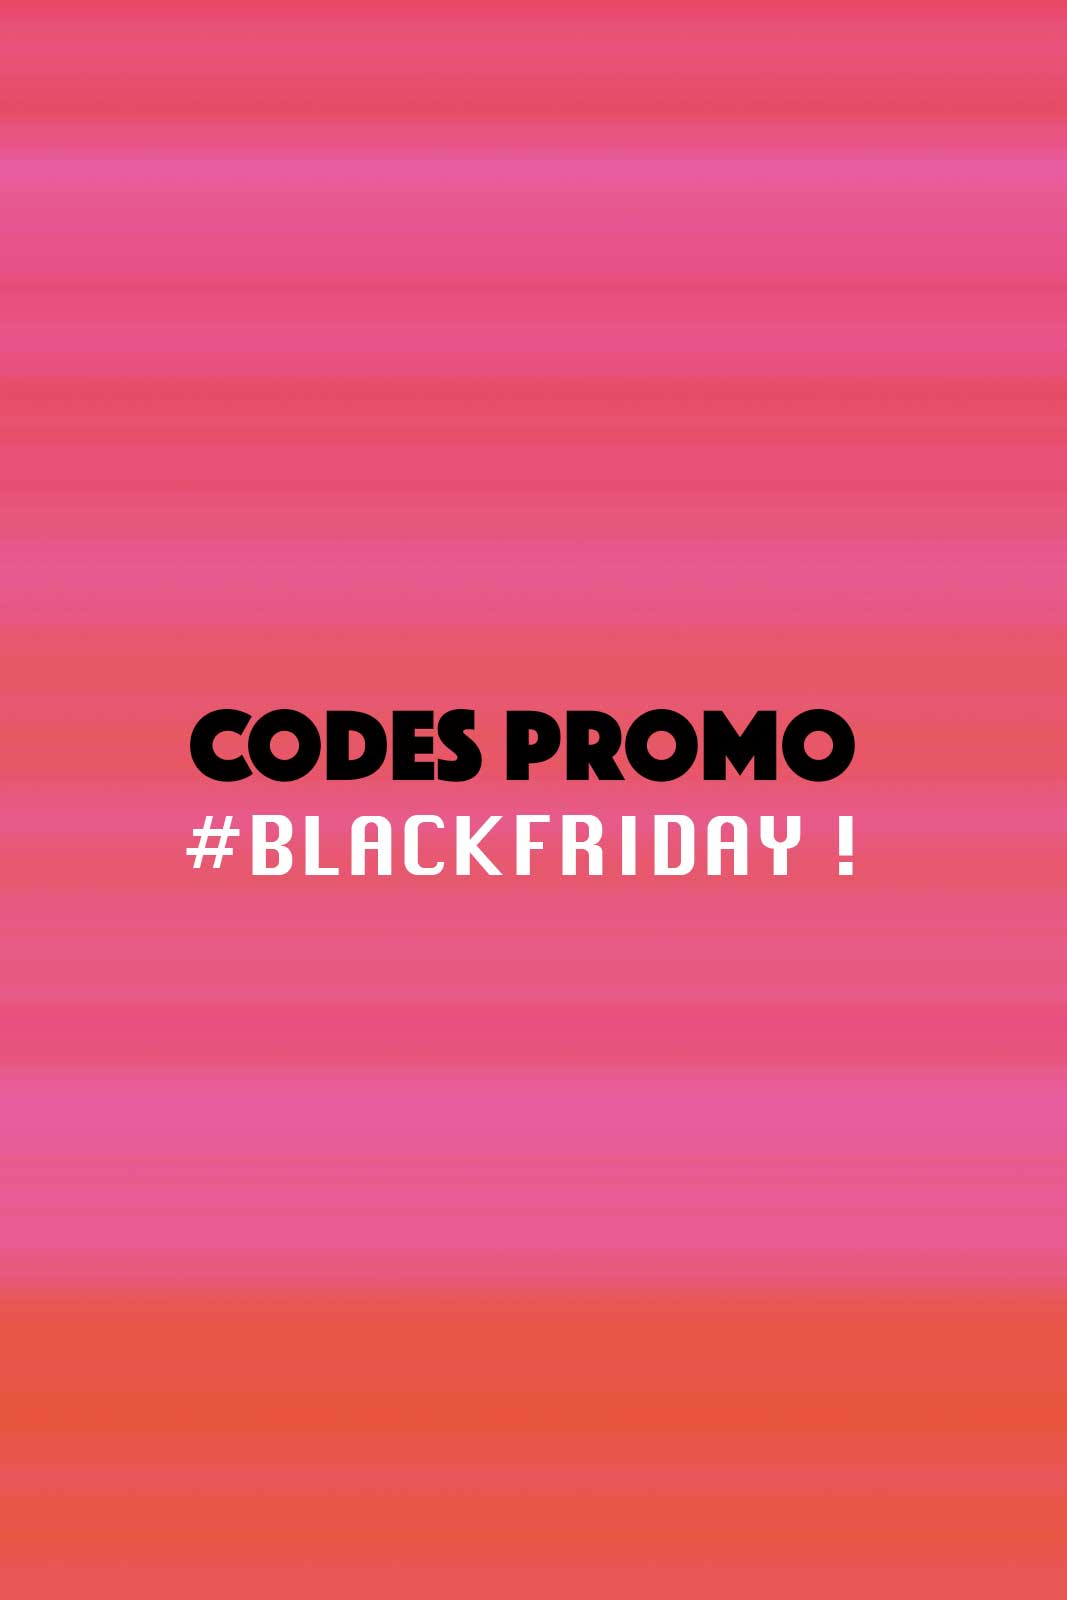 codes-promo-blackfriday 2018